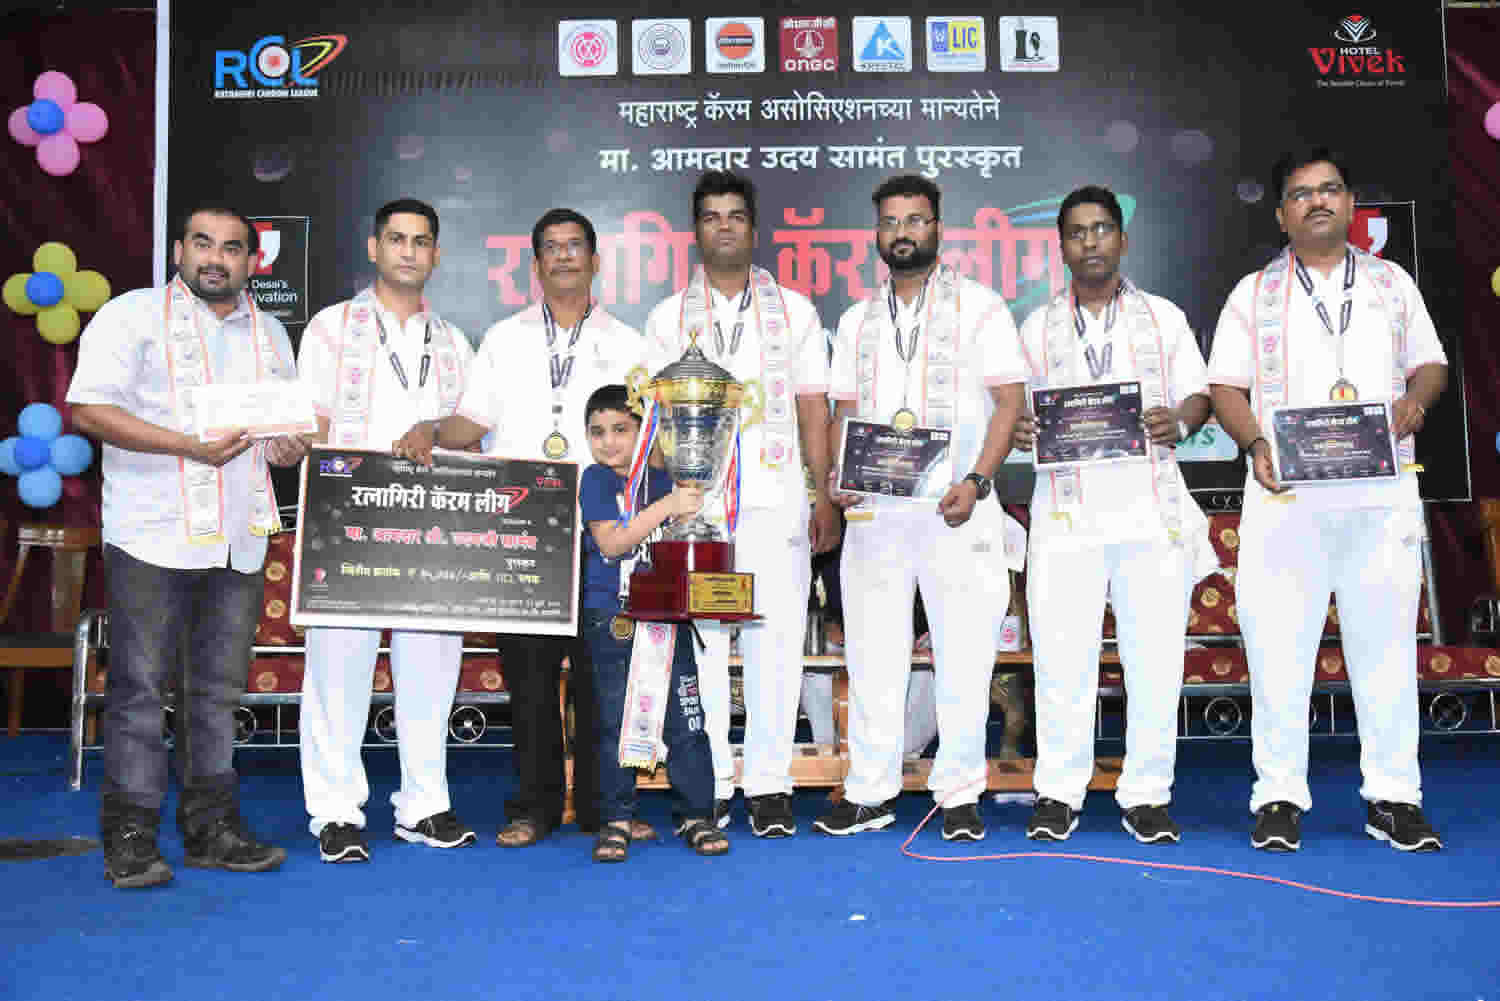 RATNAGIRI CARROM LEAGUE 2018: SEASON-4th